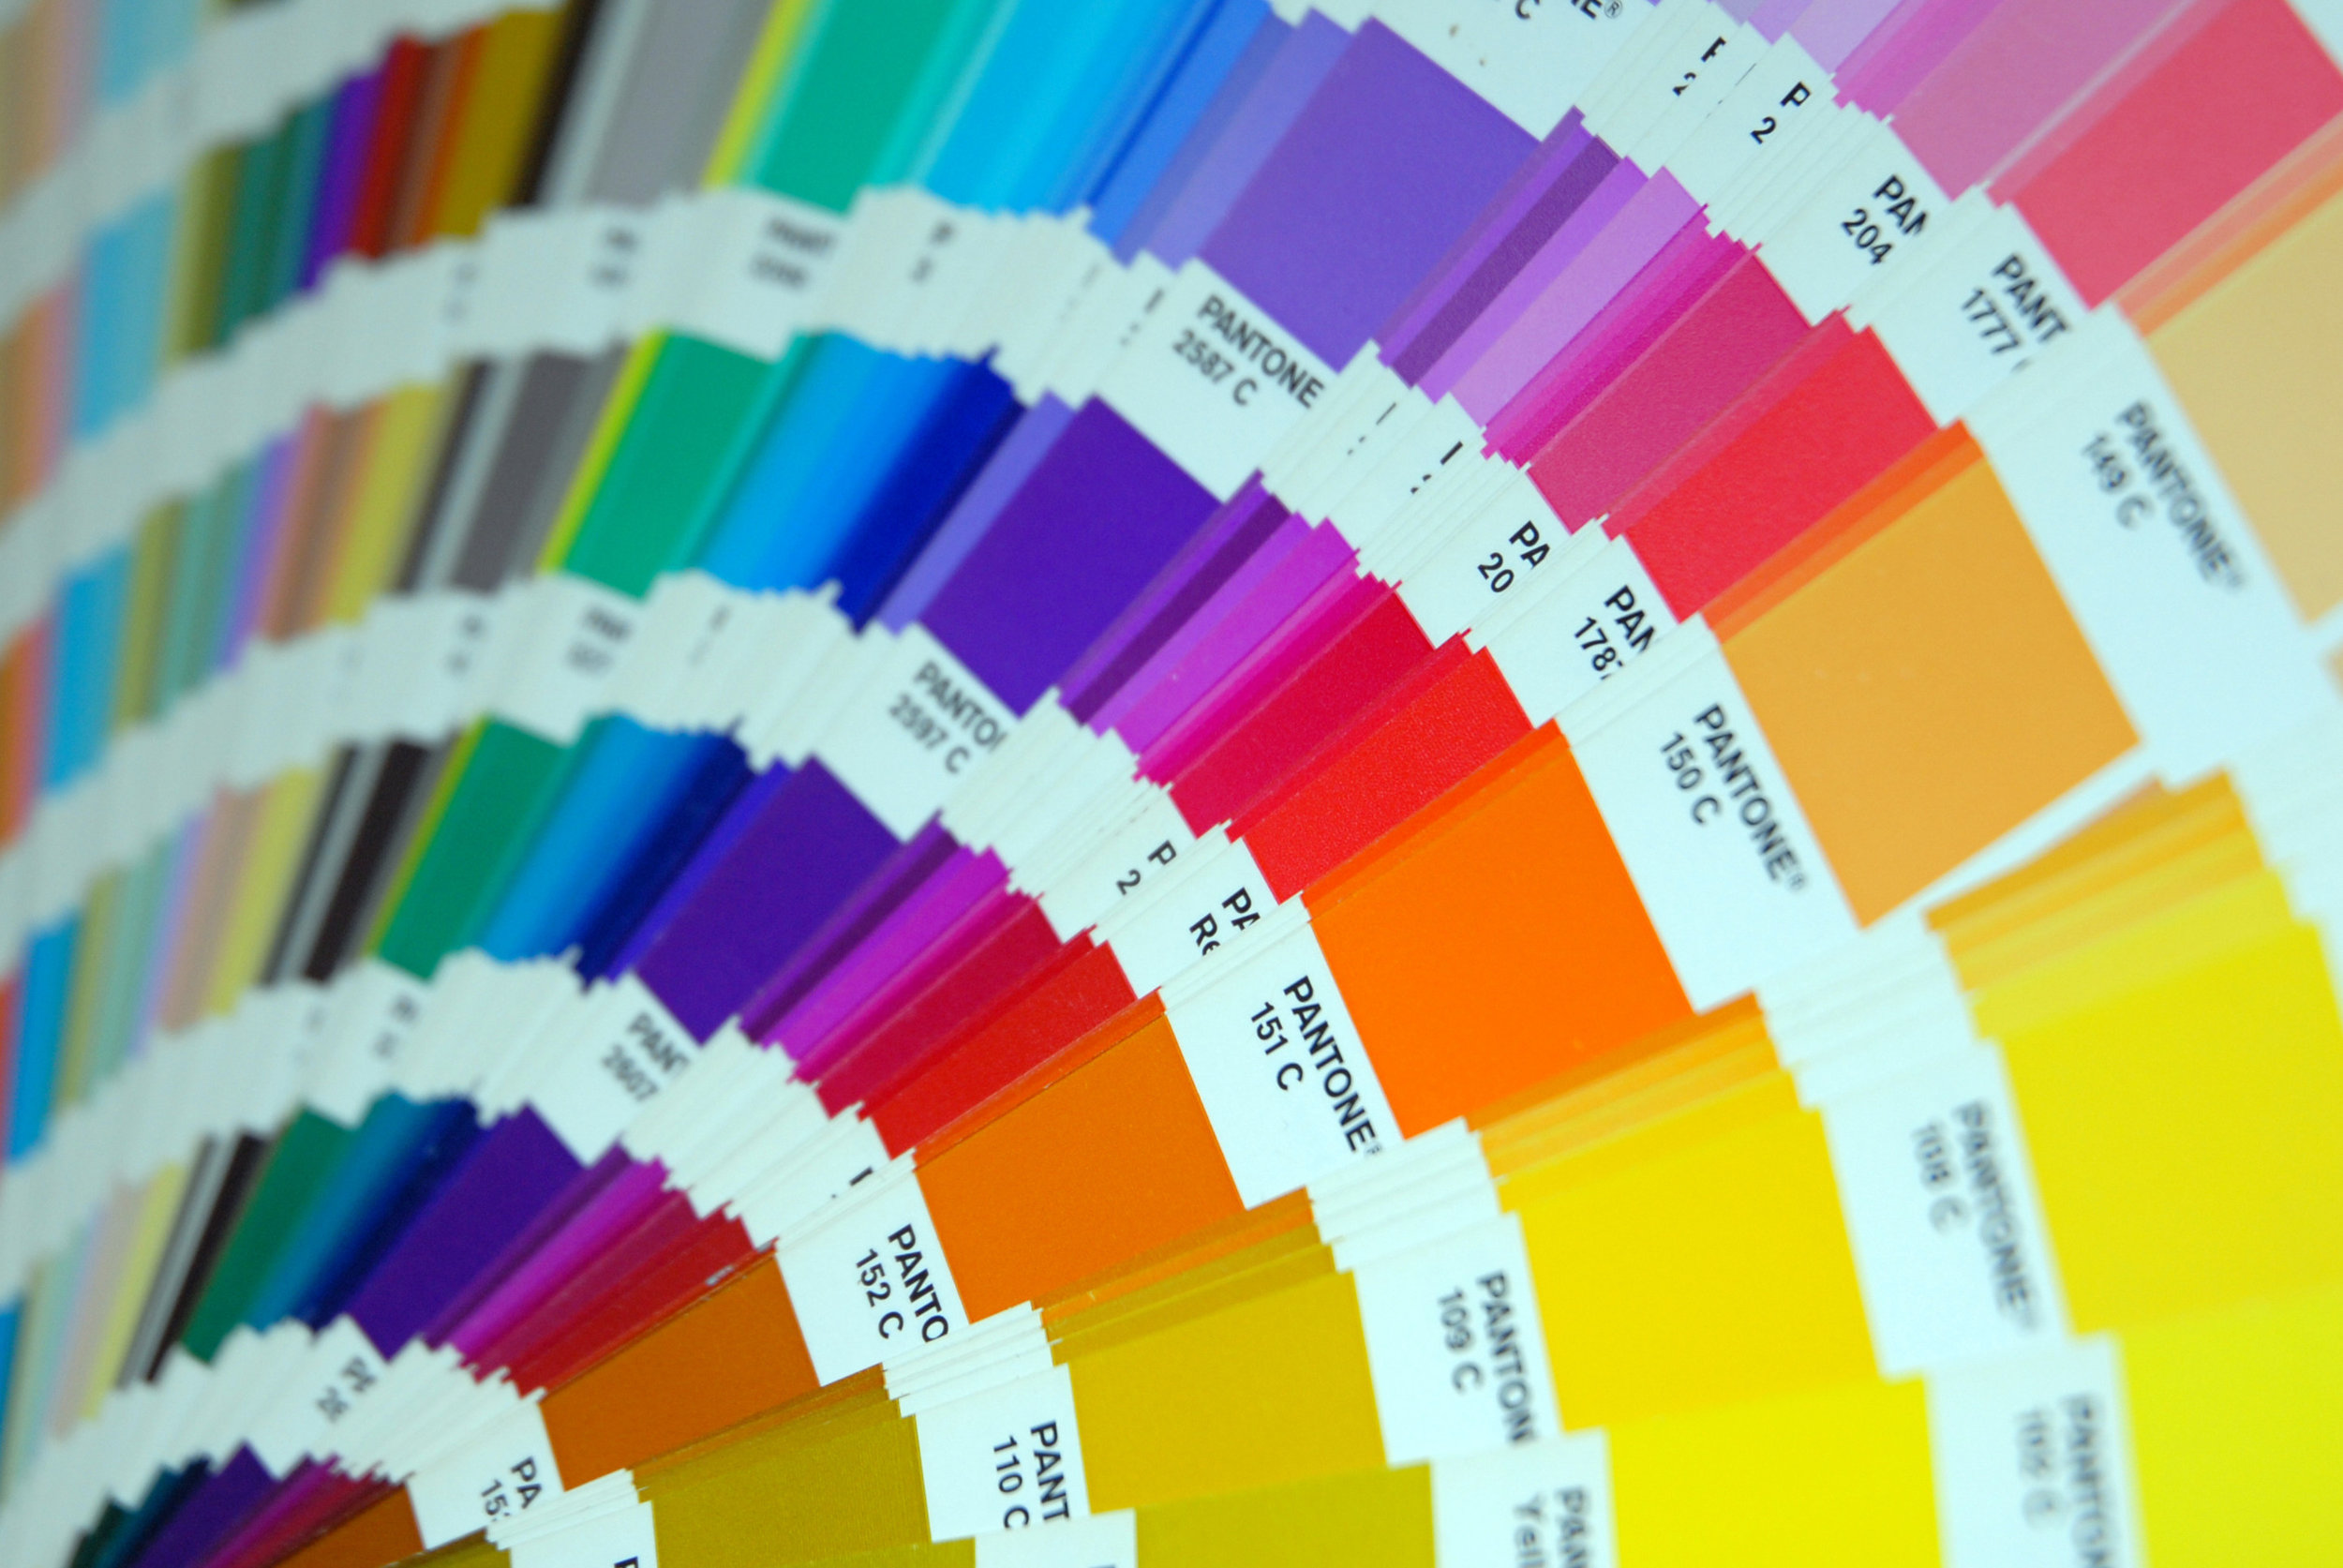 Pantone color matching - Thousands of colors to choose from to bring your design to life or match any garment, logo, or stlye. Every custom ink is mixed in house for each order.